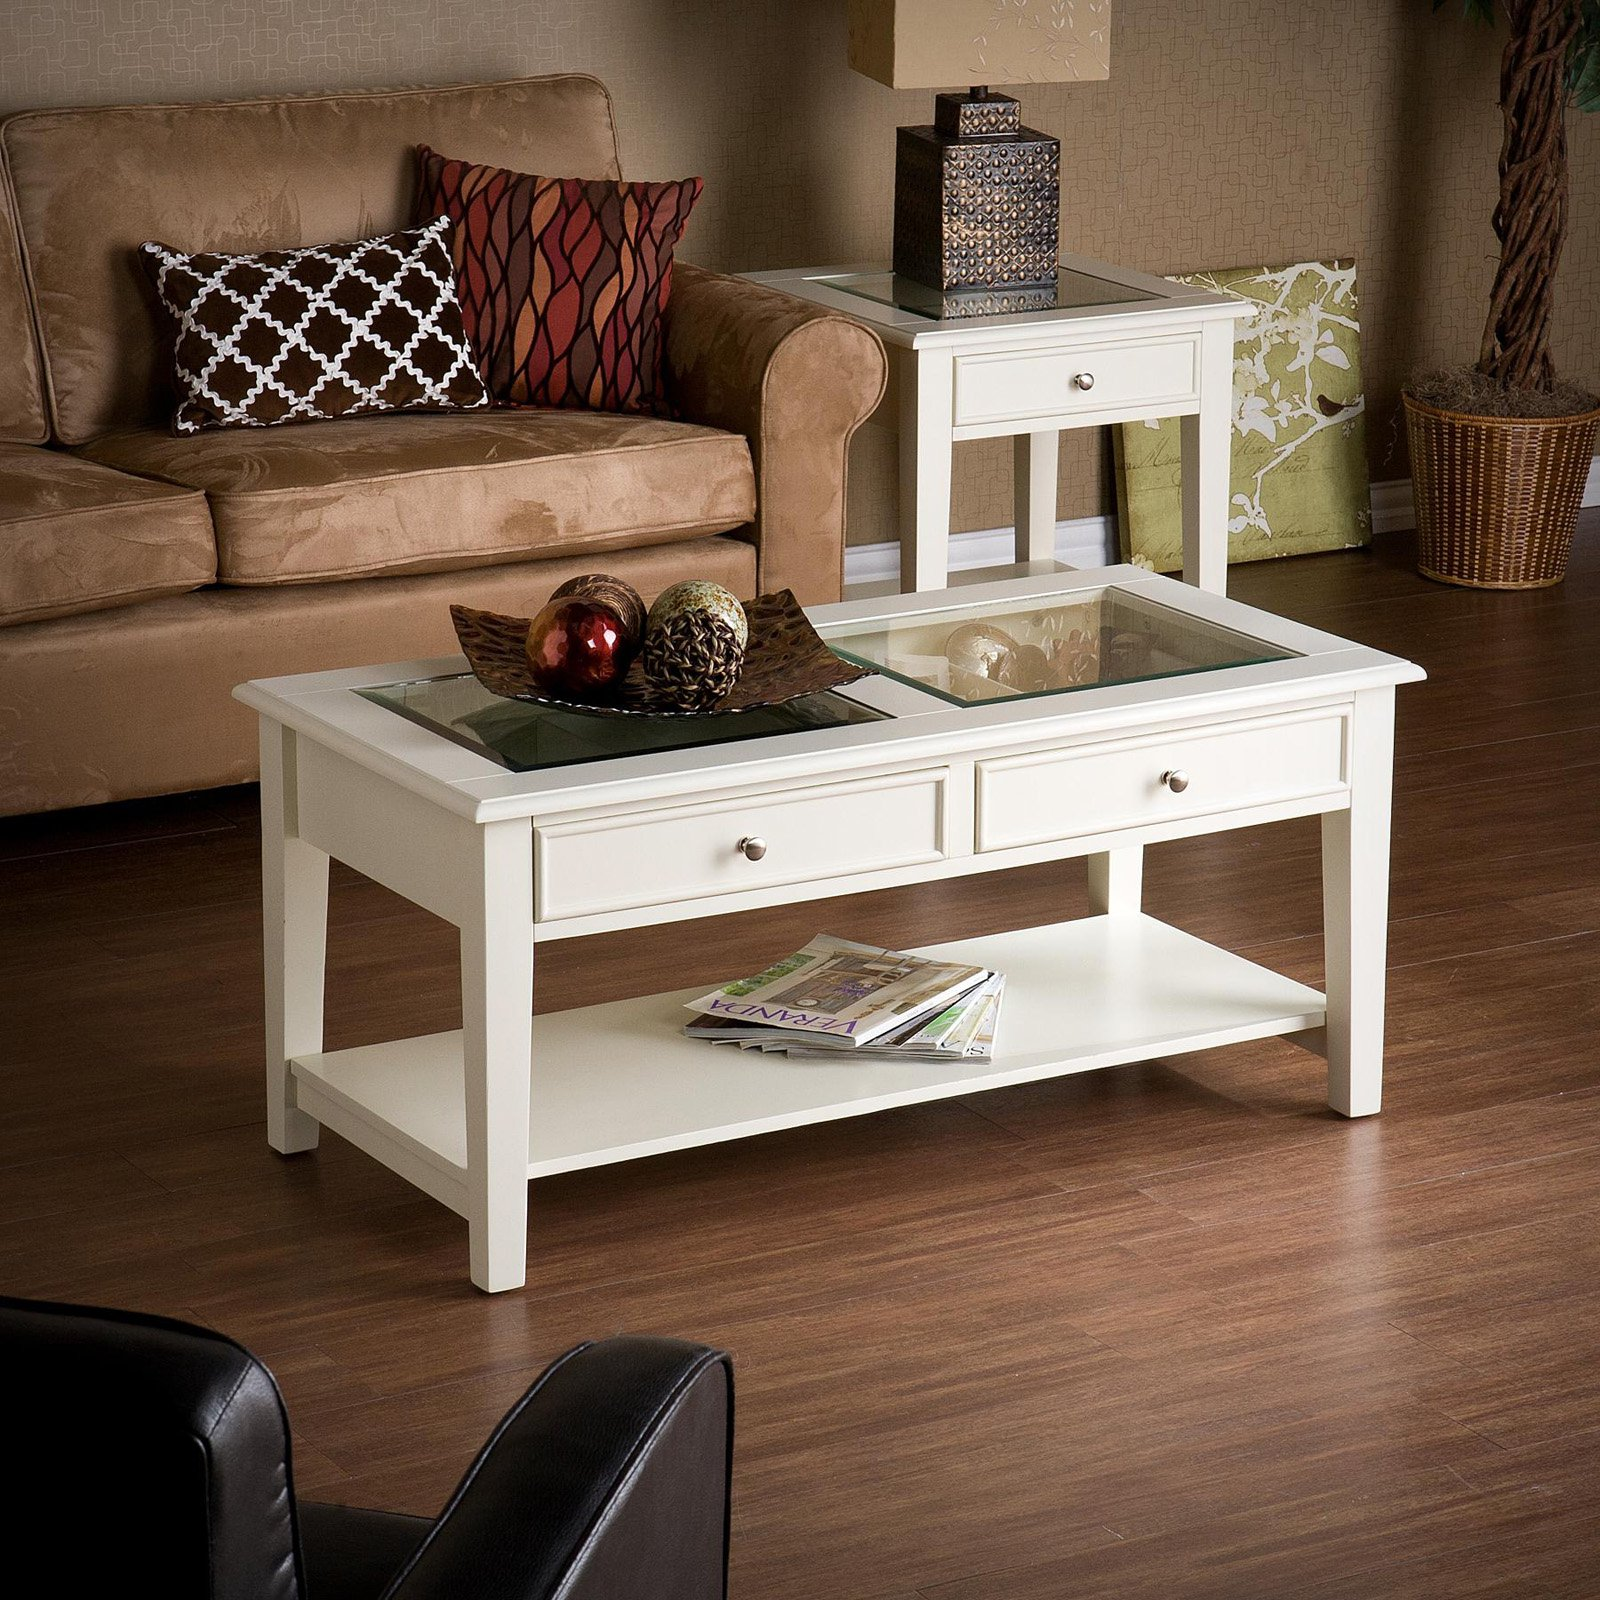 Beau Southern Enterprises Panorama Cocktail Table, White   Walmart.com